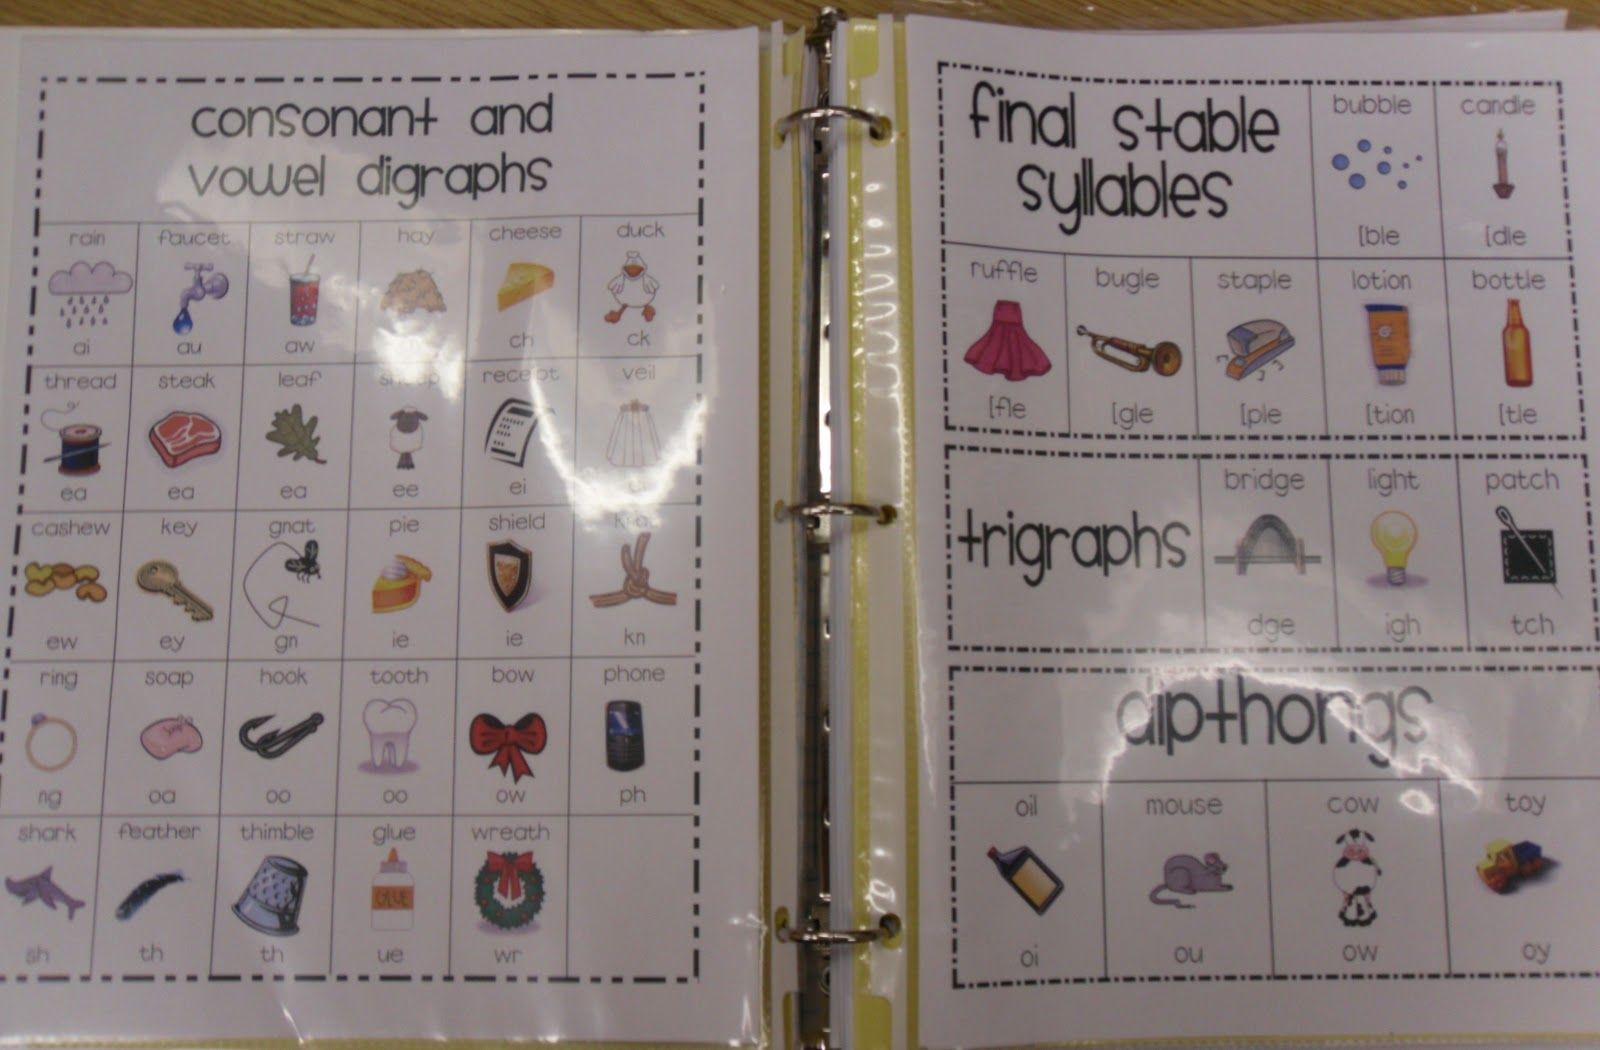 Digraphs Final Stable Syllables Etc Chart